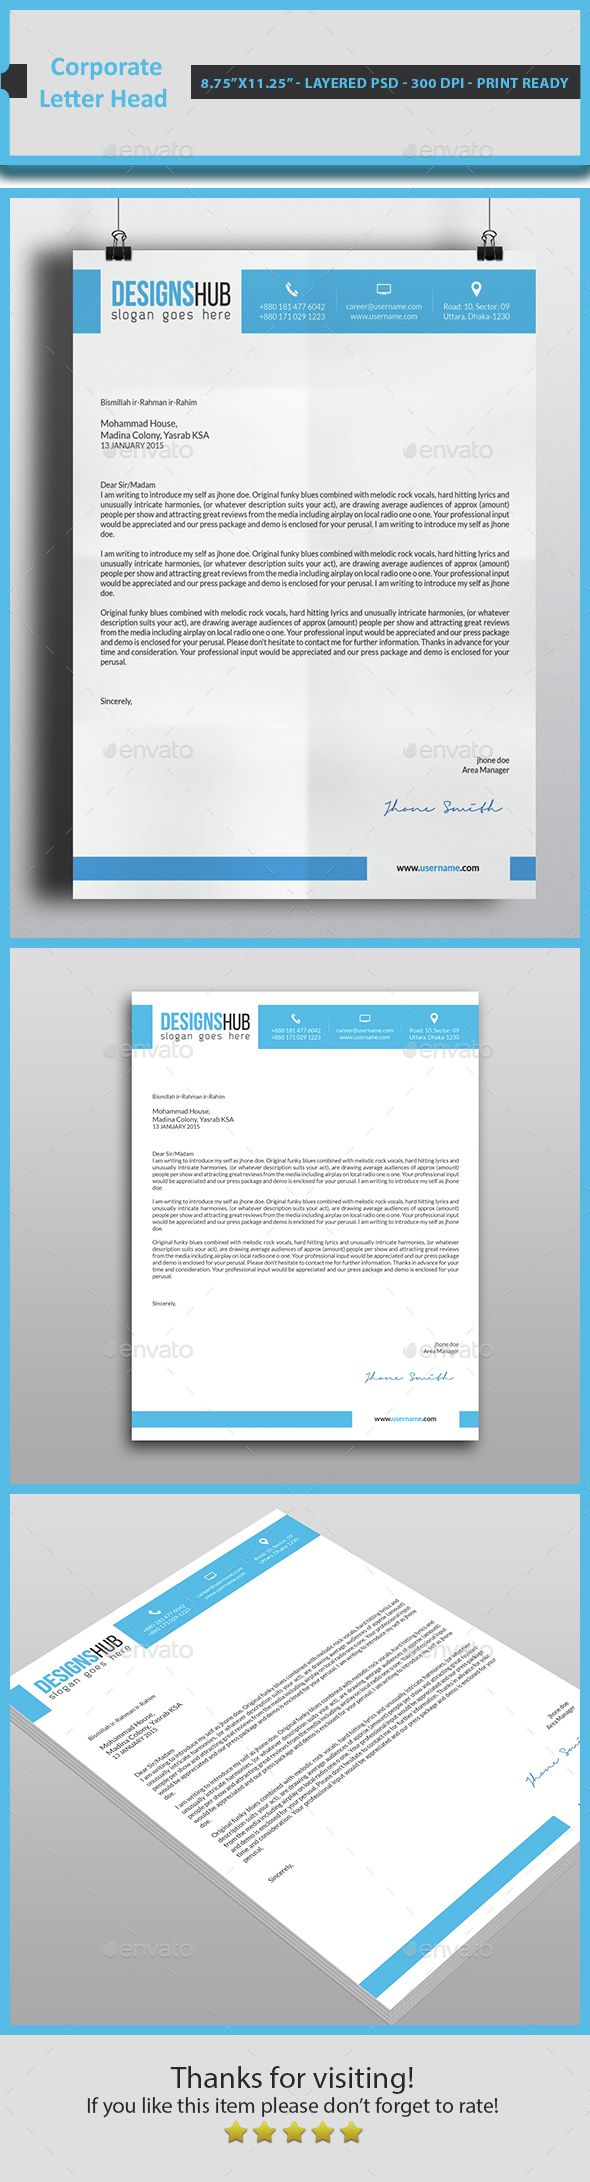 corporate letter headdownload here httpgraphicrivernet - Letterhead Design Ideas